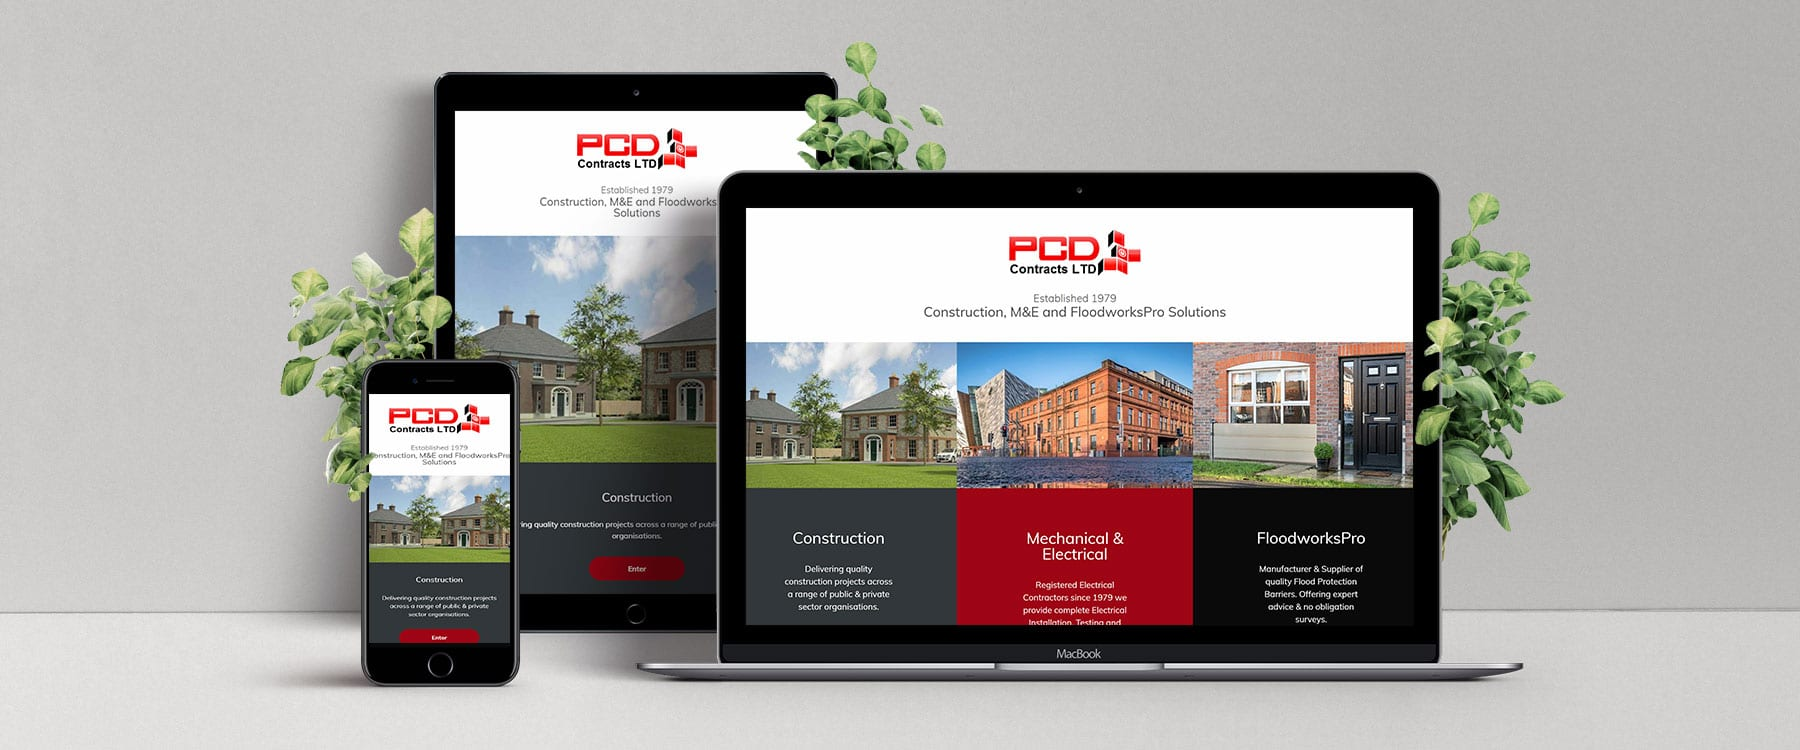 Brand New Multi Website for PCD Contracts LTD Image